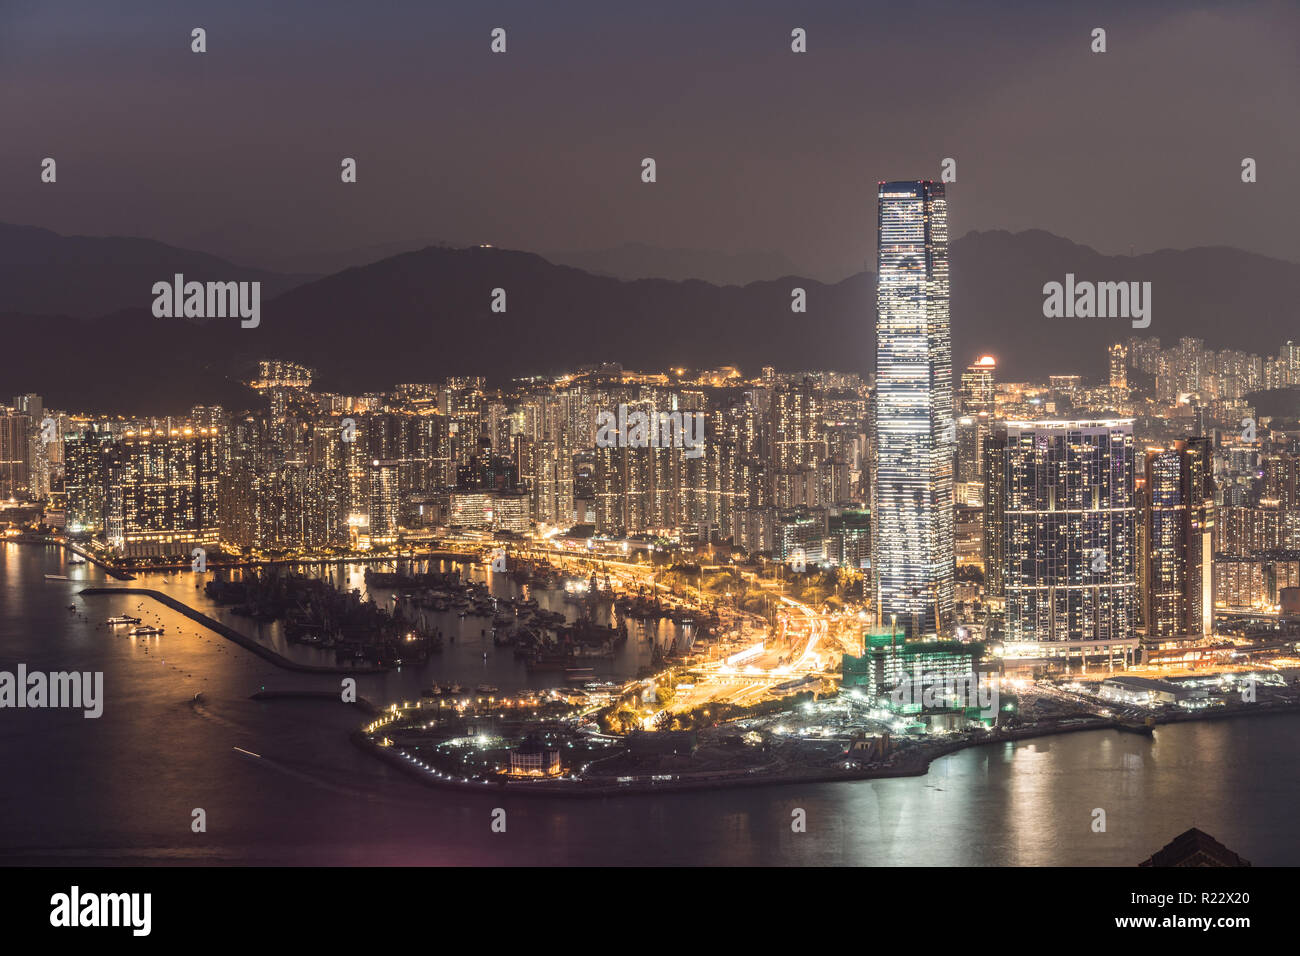 Night view over Kowloon skyline from the Victoria peak in Hong Kong SAR, China - Stock Image